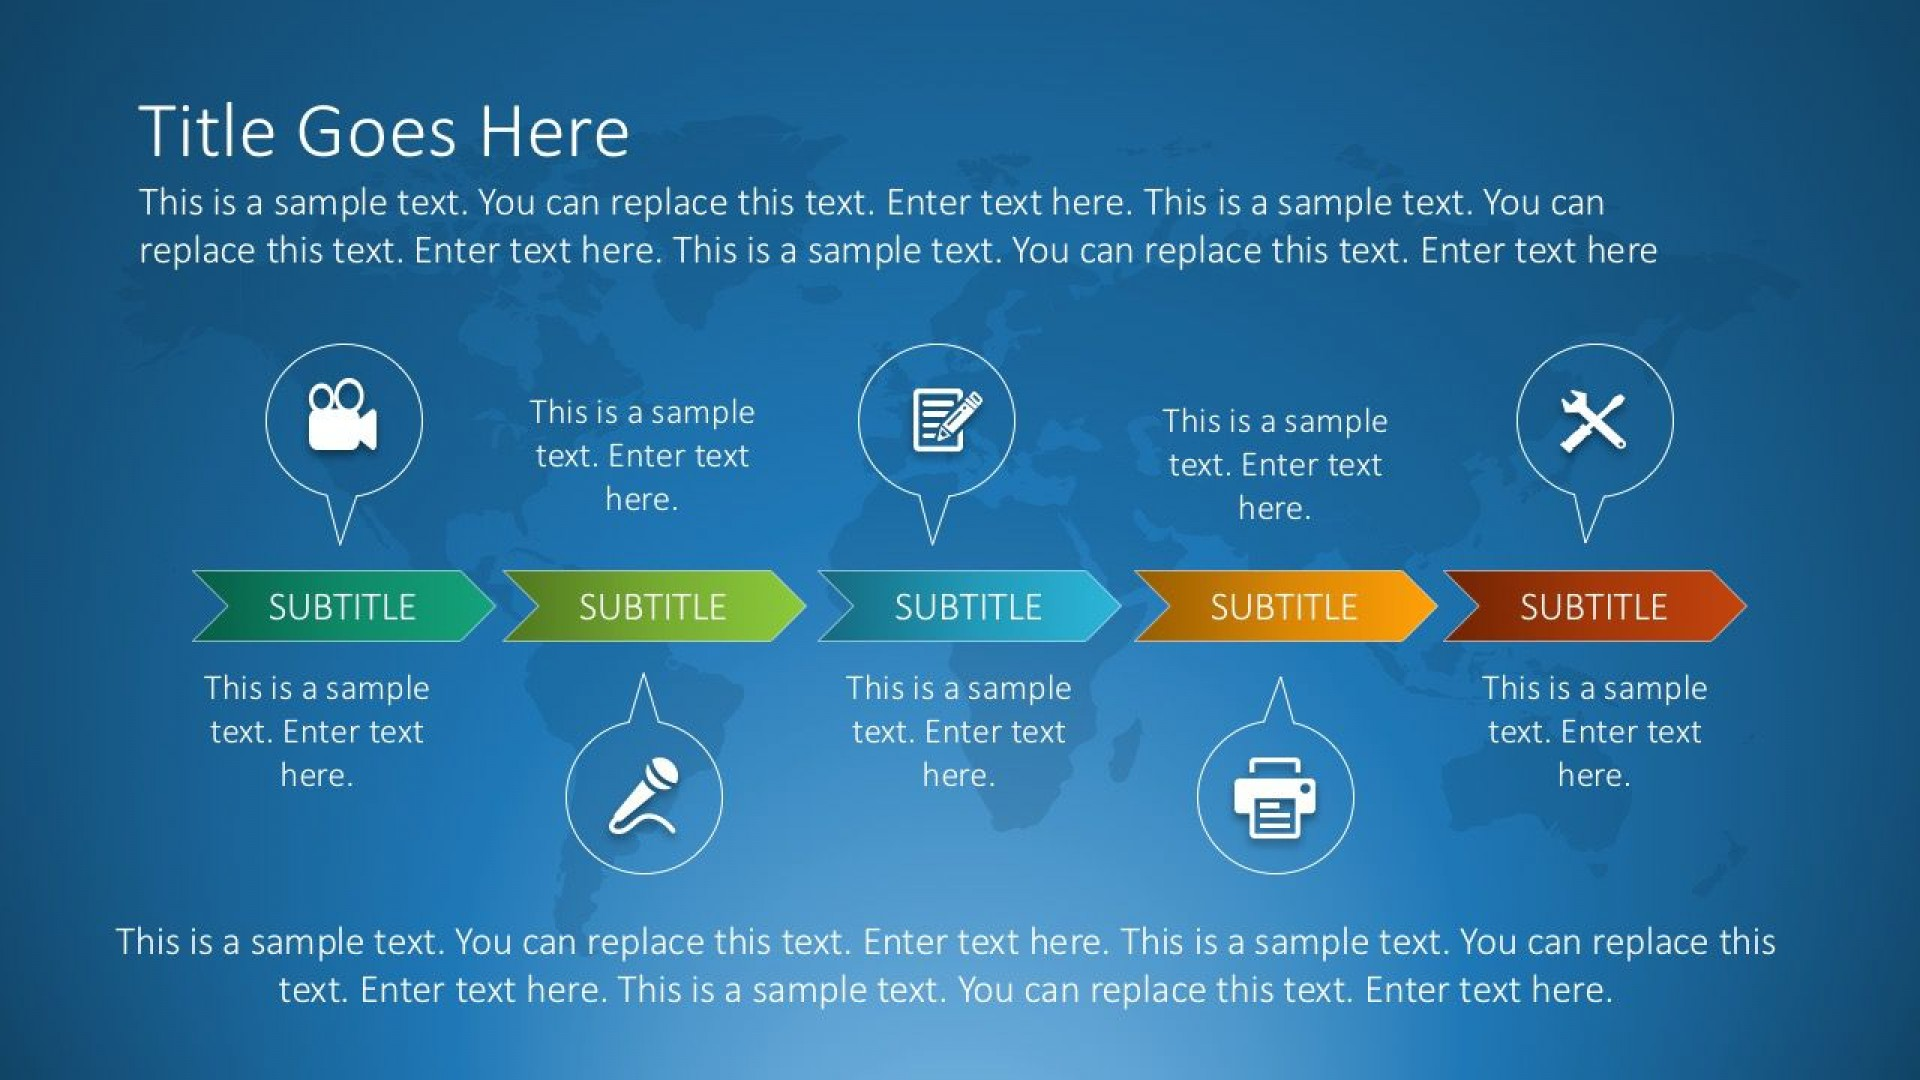 000 Impressive Product Launch Plan Powerpoint Template Free Image 1920